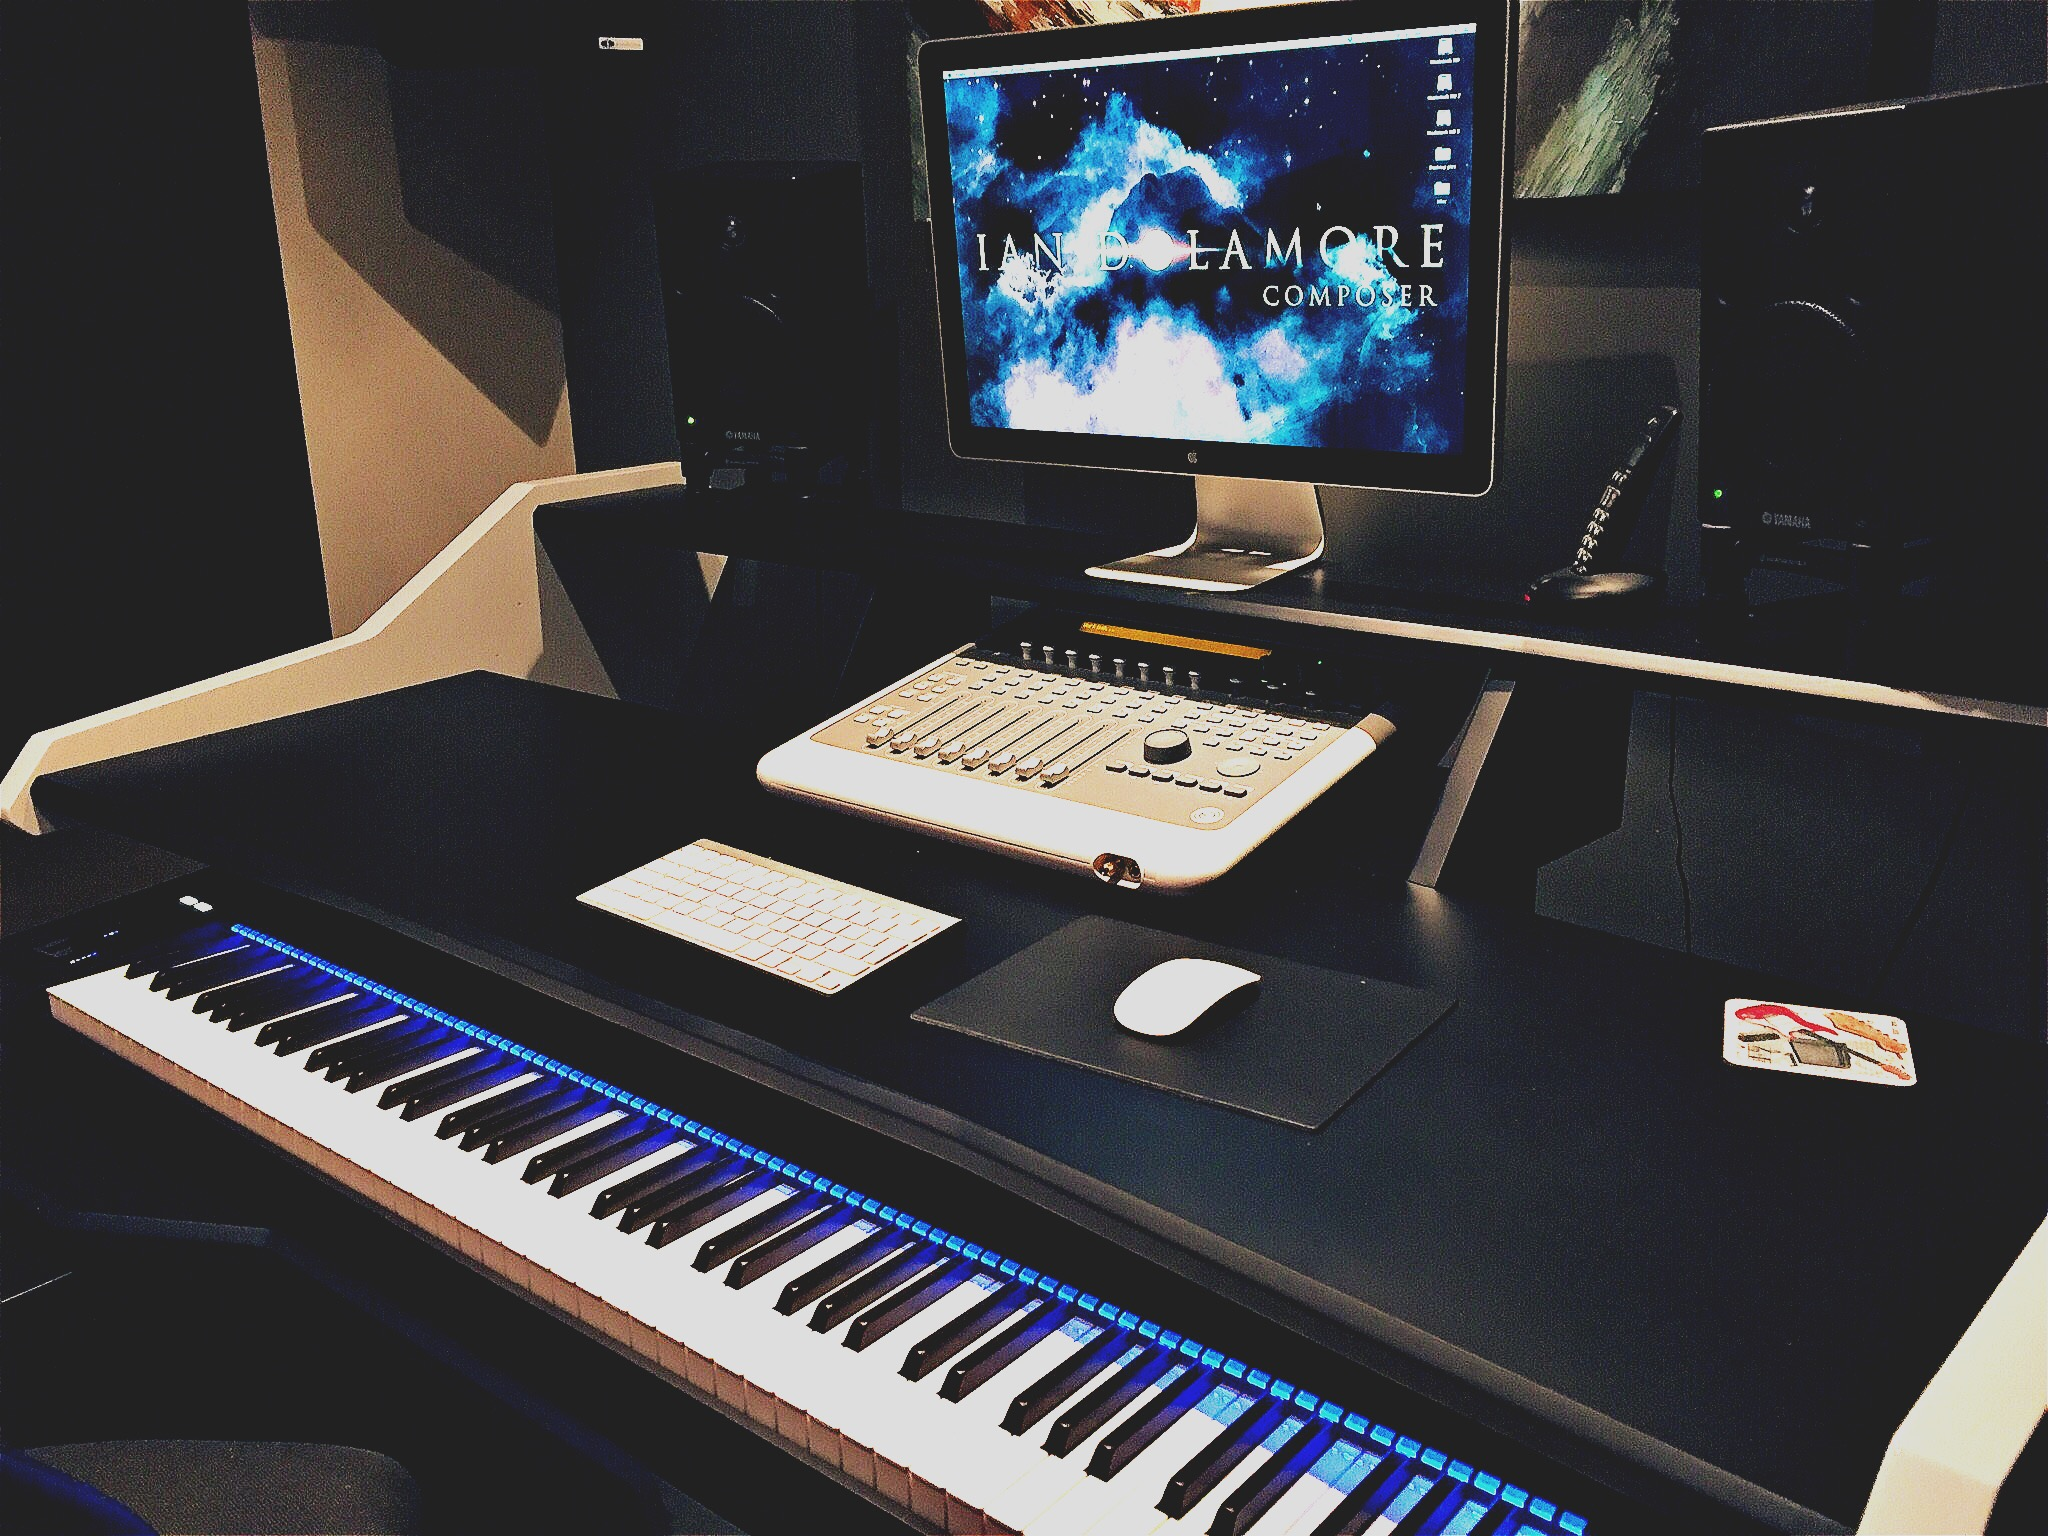 STUDIO - Professionally-equipped studio for composing and teaching. Award-winning media composer and producer.